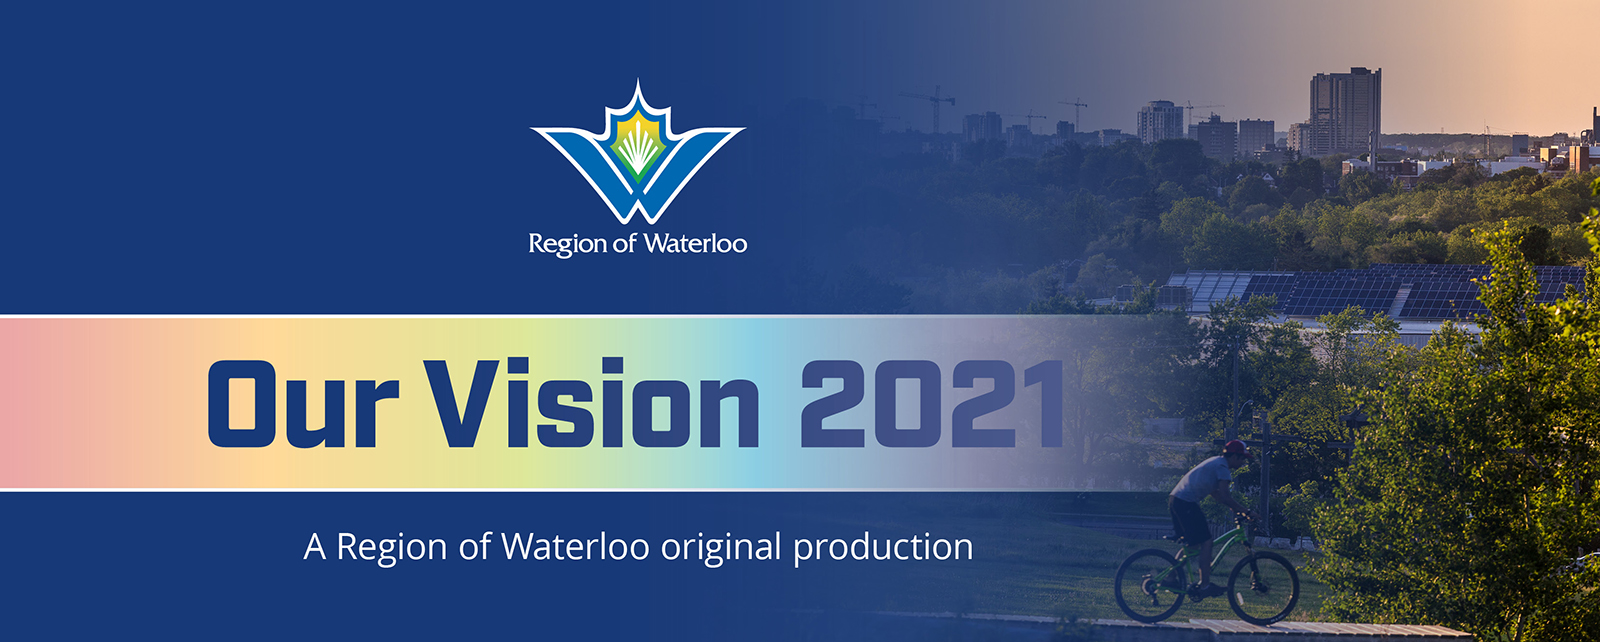 Our Vision 2021